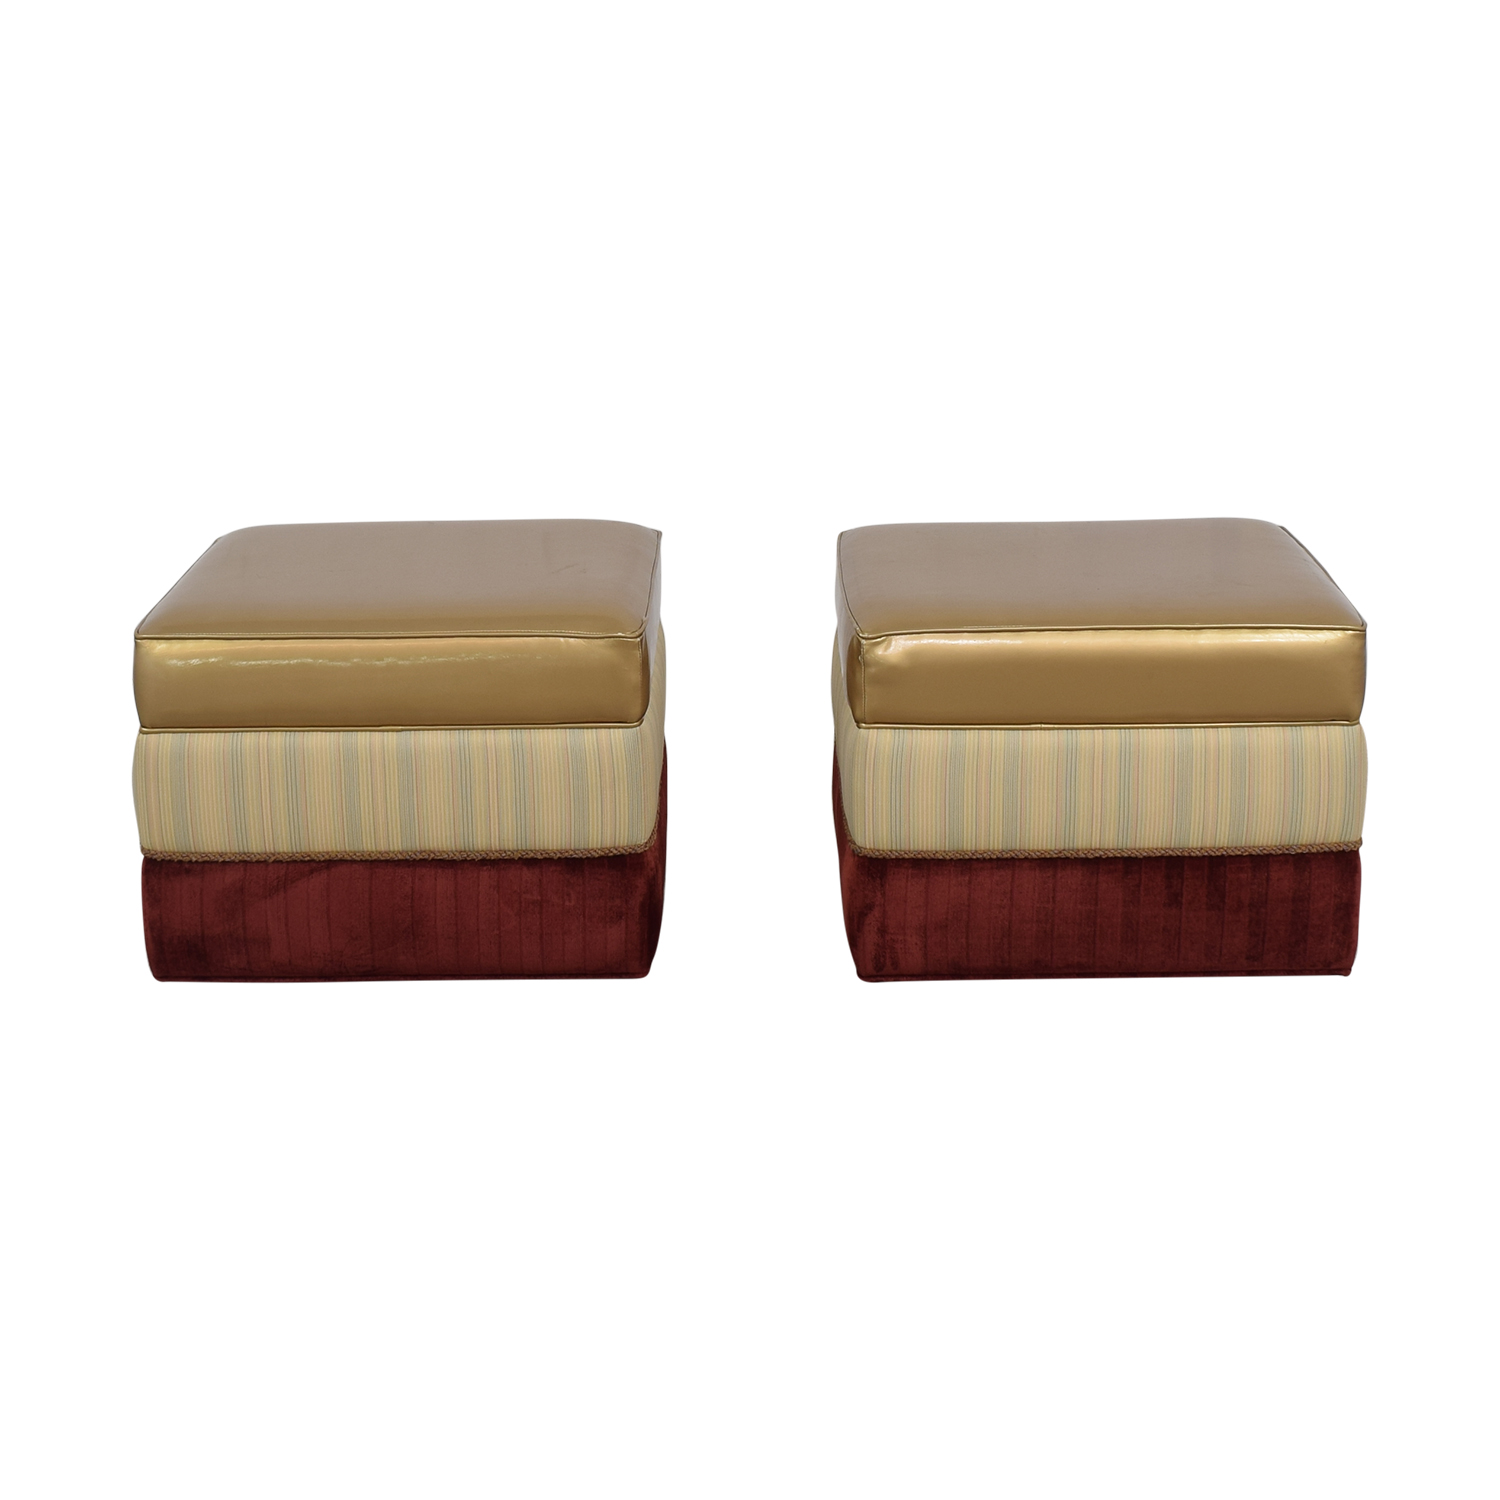 Vanguard Furniture Vanguard Personalized Ottomans ct